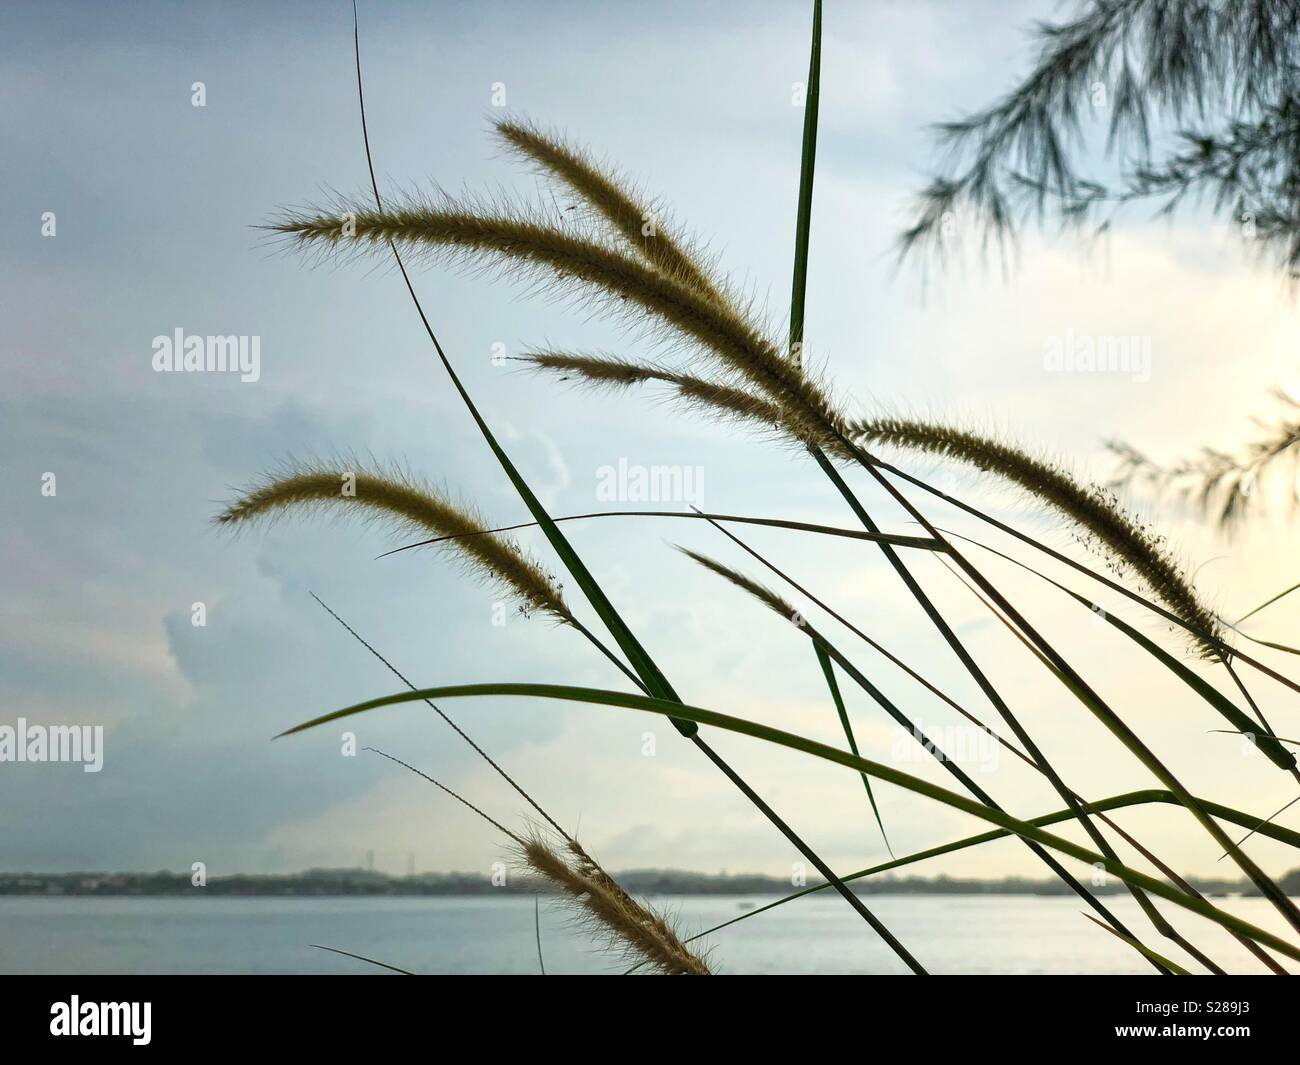 Abstract natural backgrounds of Cogon grass,blady grass, lalang grass or Imperata Cylindrica - Stock Image